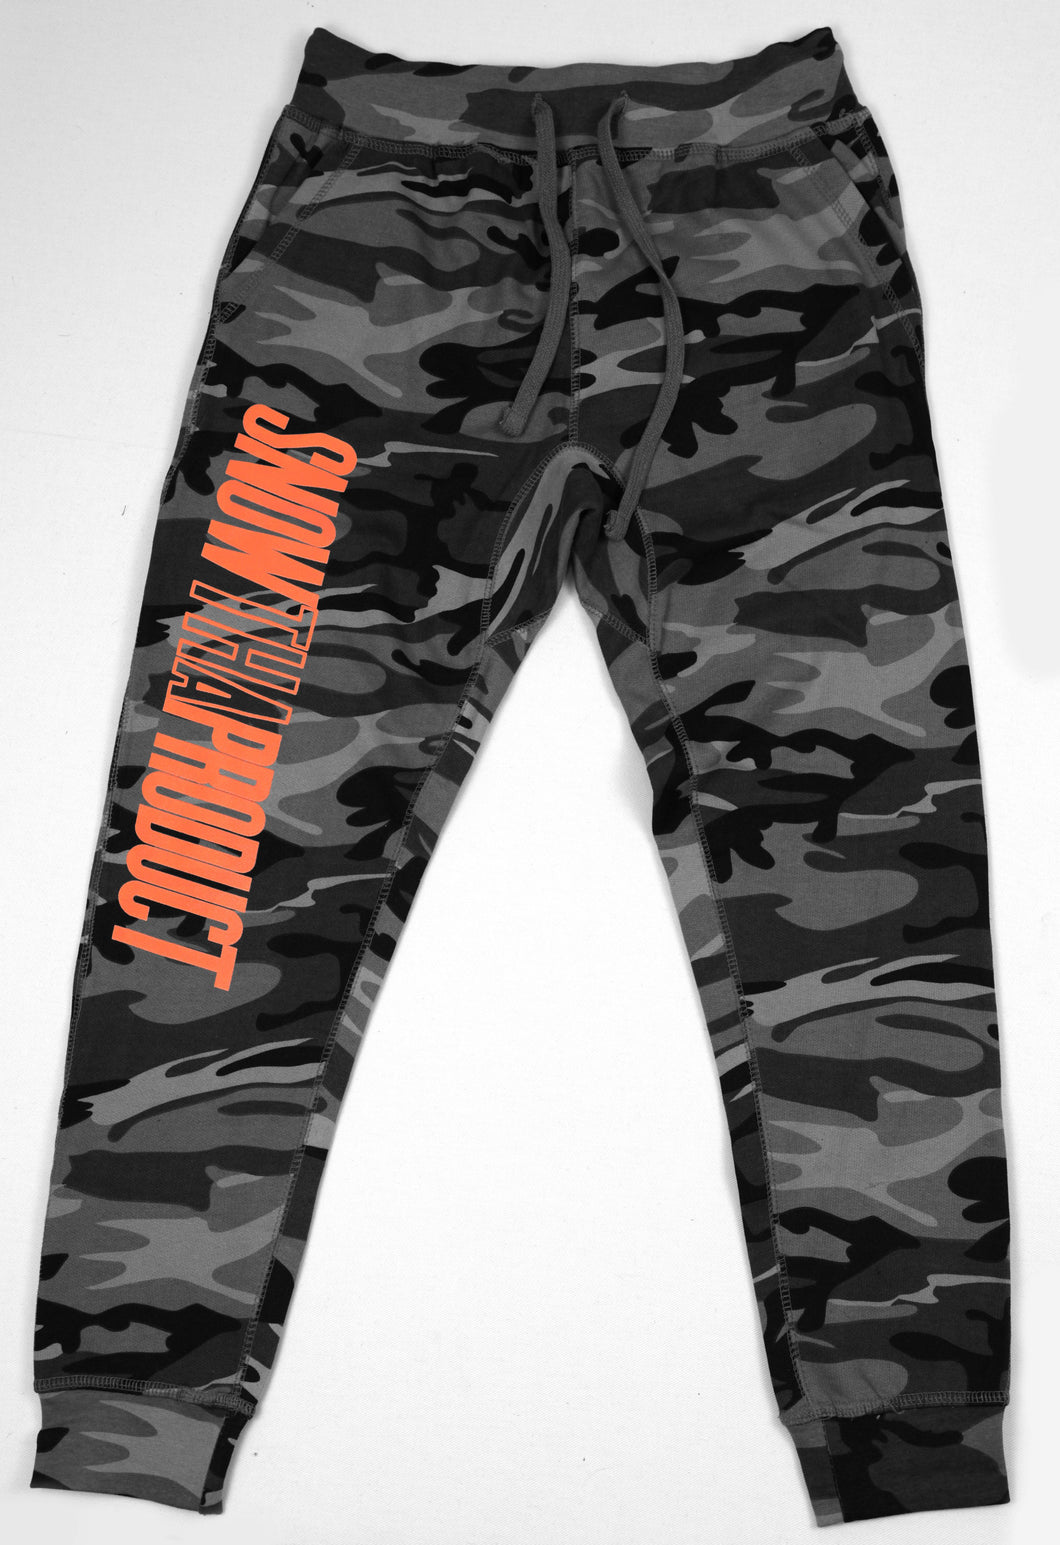 SNOW THA PRODUCT CAMO JOGGERS - EVERYDAYDAYS